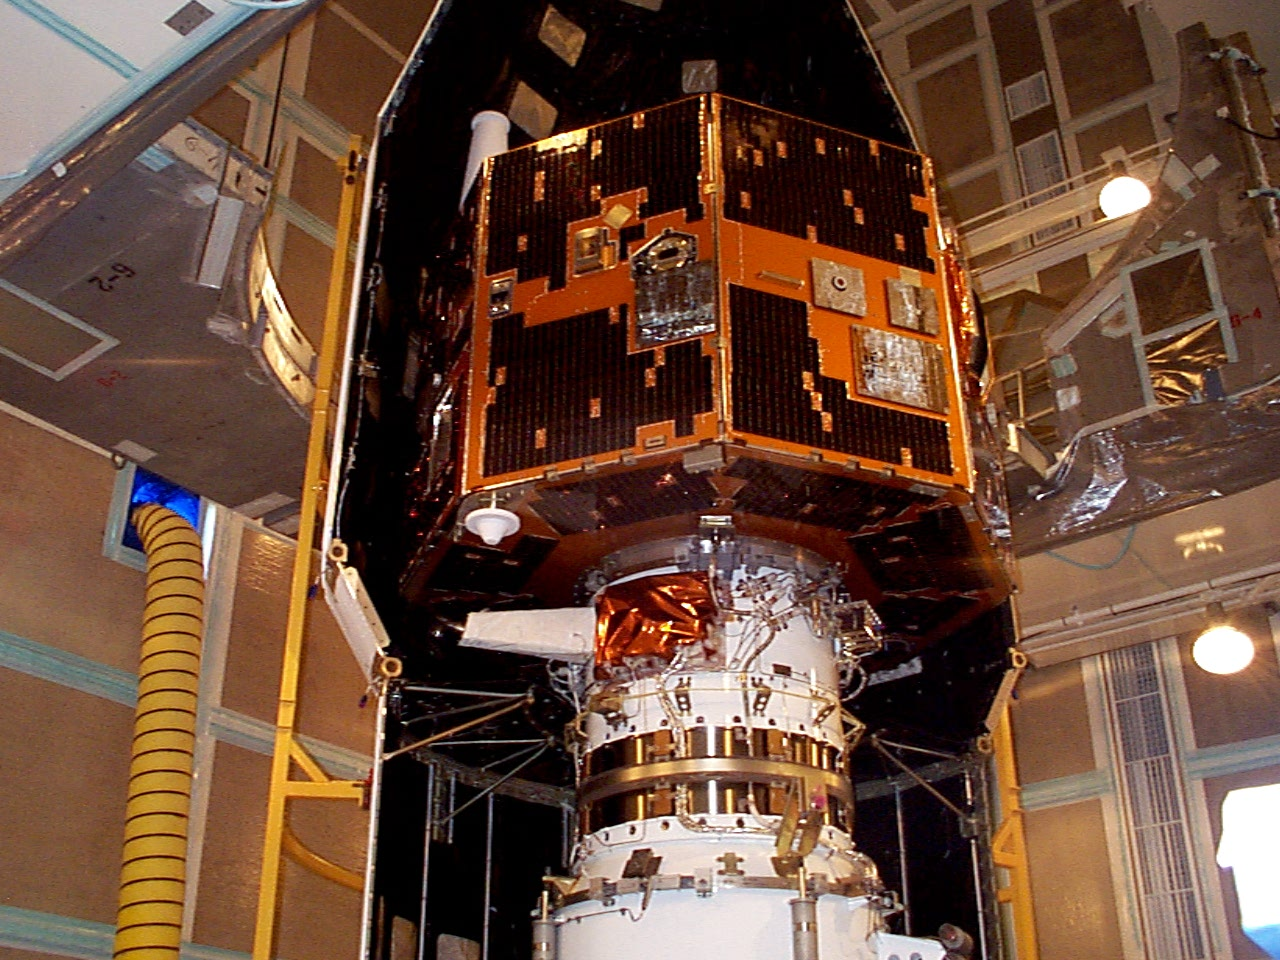 NASA to attempt recovery of lost IMAGE satellite